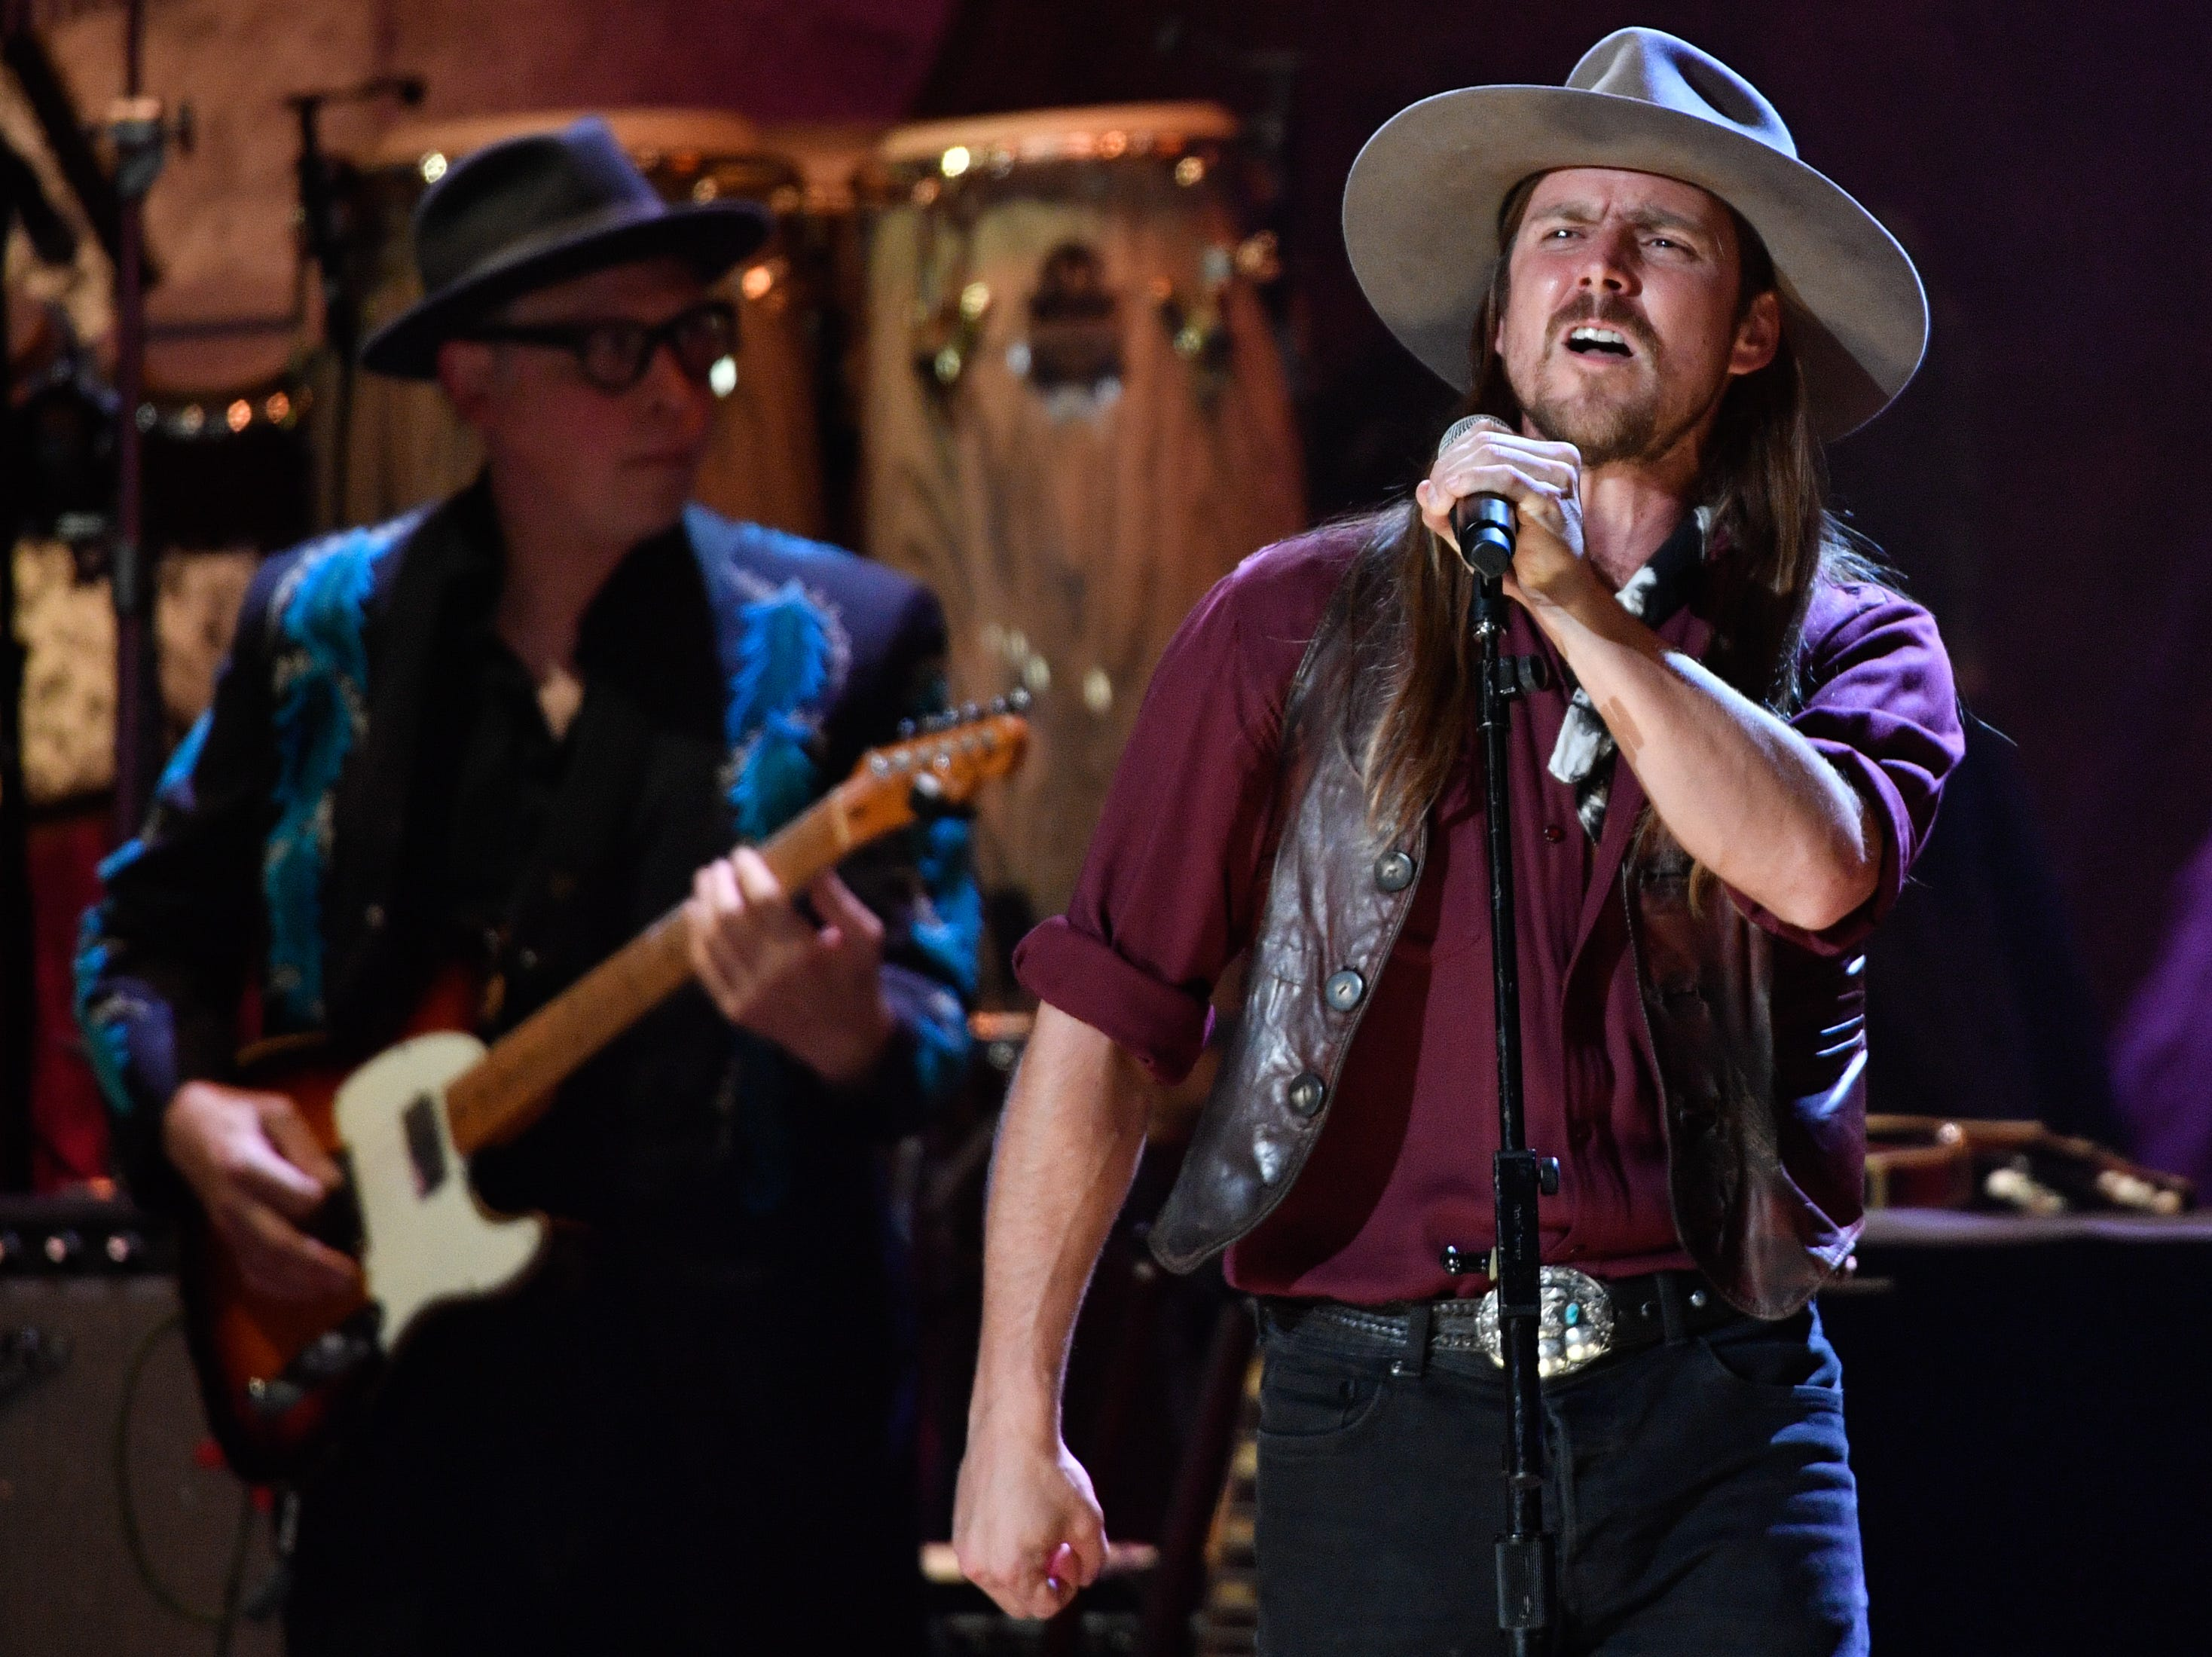 Lukas Nelson performs during the 2018 Americana Honors and Awards show at the Ryman Auditorium in Nashville, Tenn., Wednesday, Sept. 12, 2018.